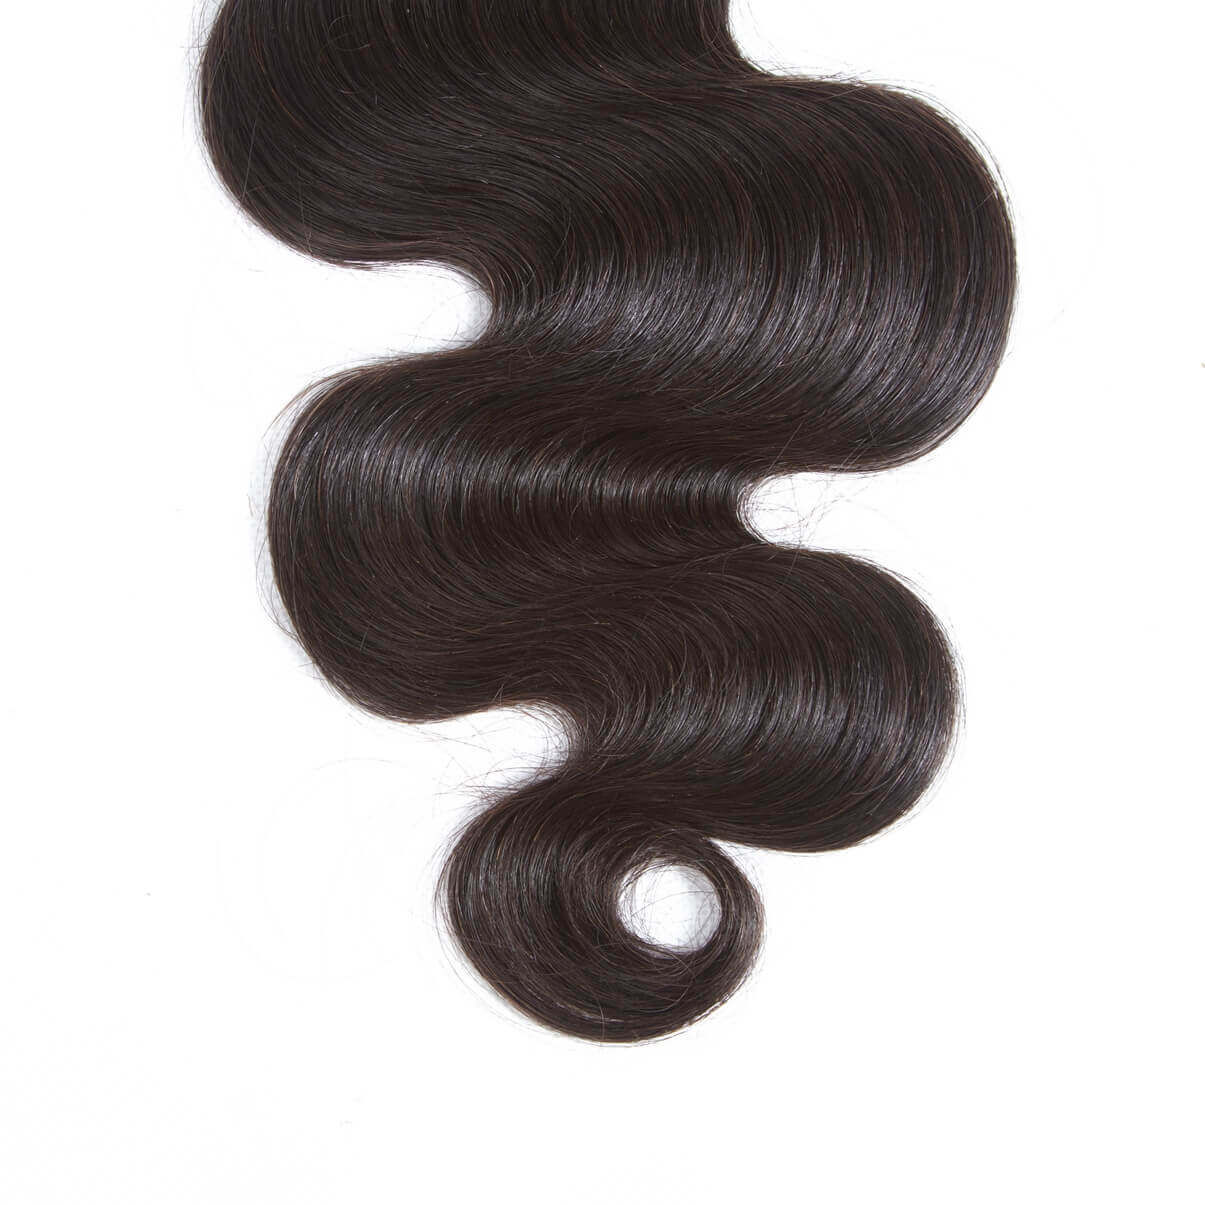 Lakihair 8A Brazilian Body Wave Virgin Human Hair 4 Bundles With Lace Closure 4x4